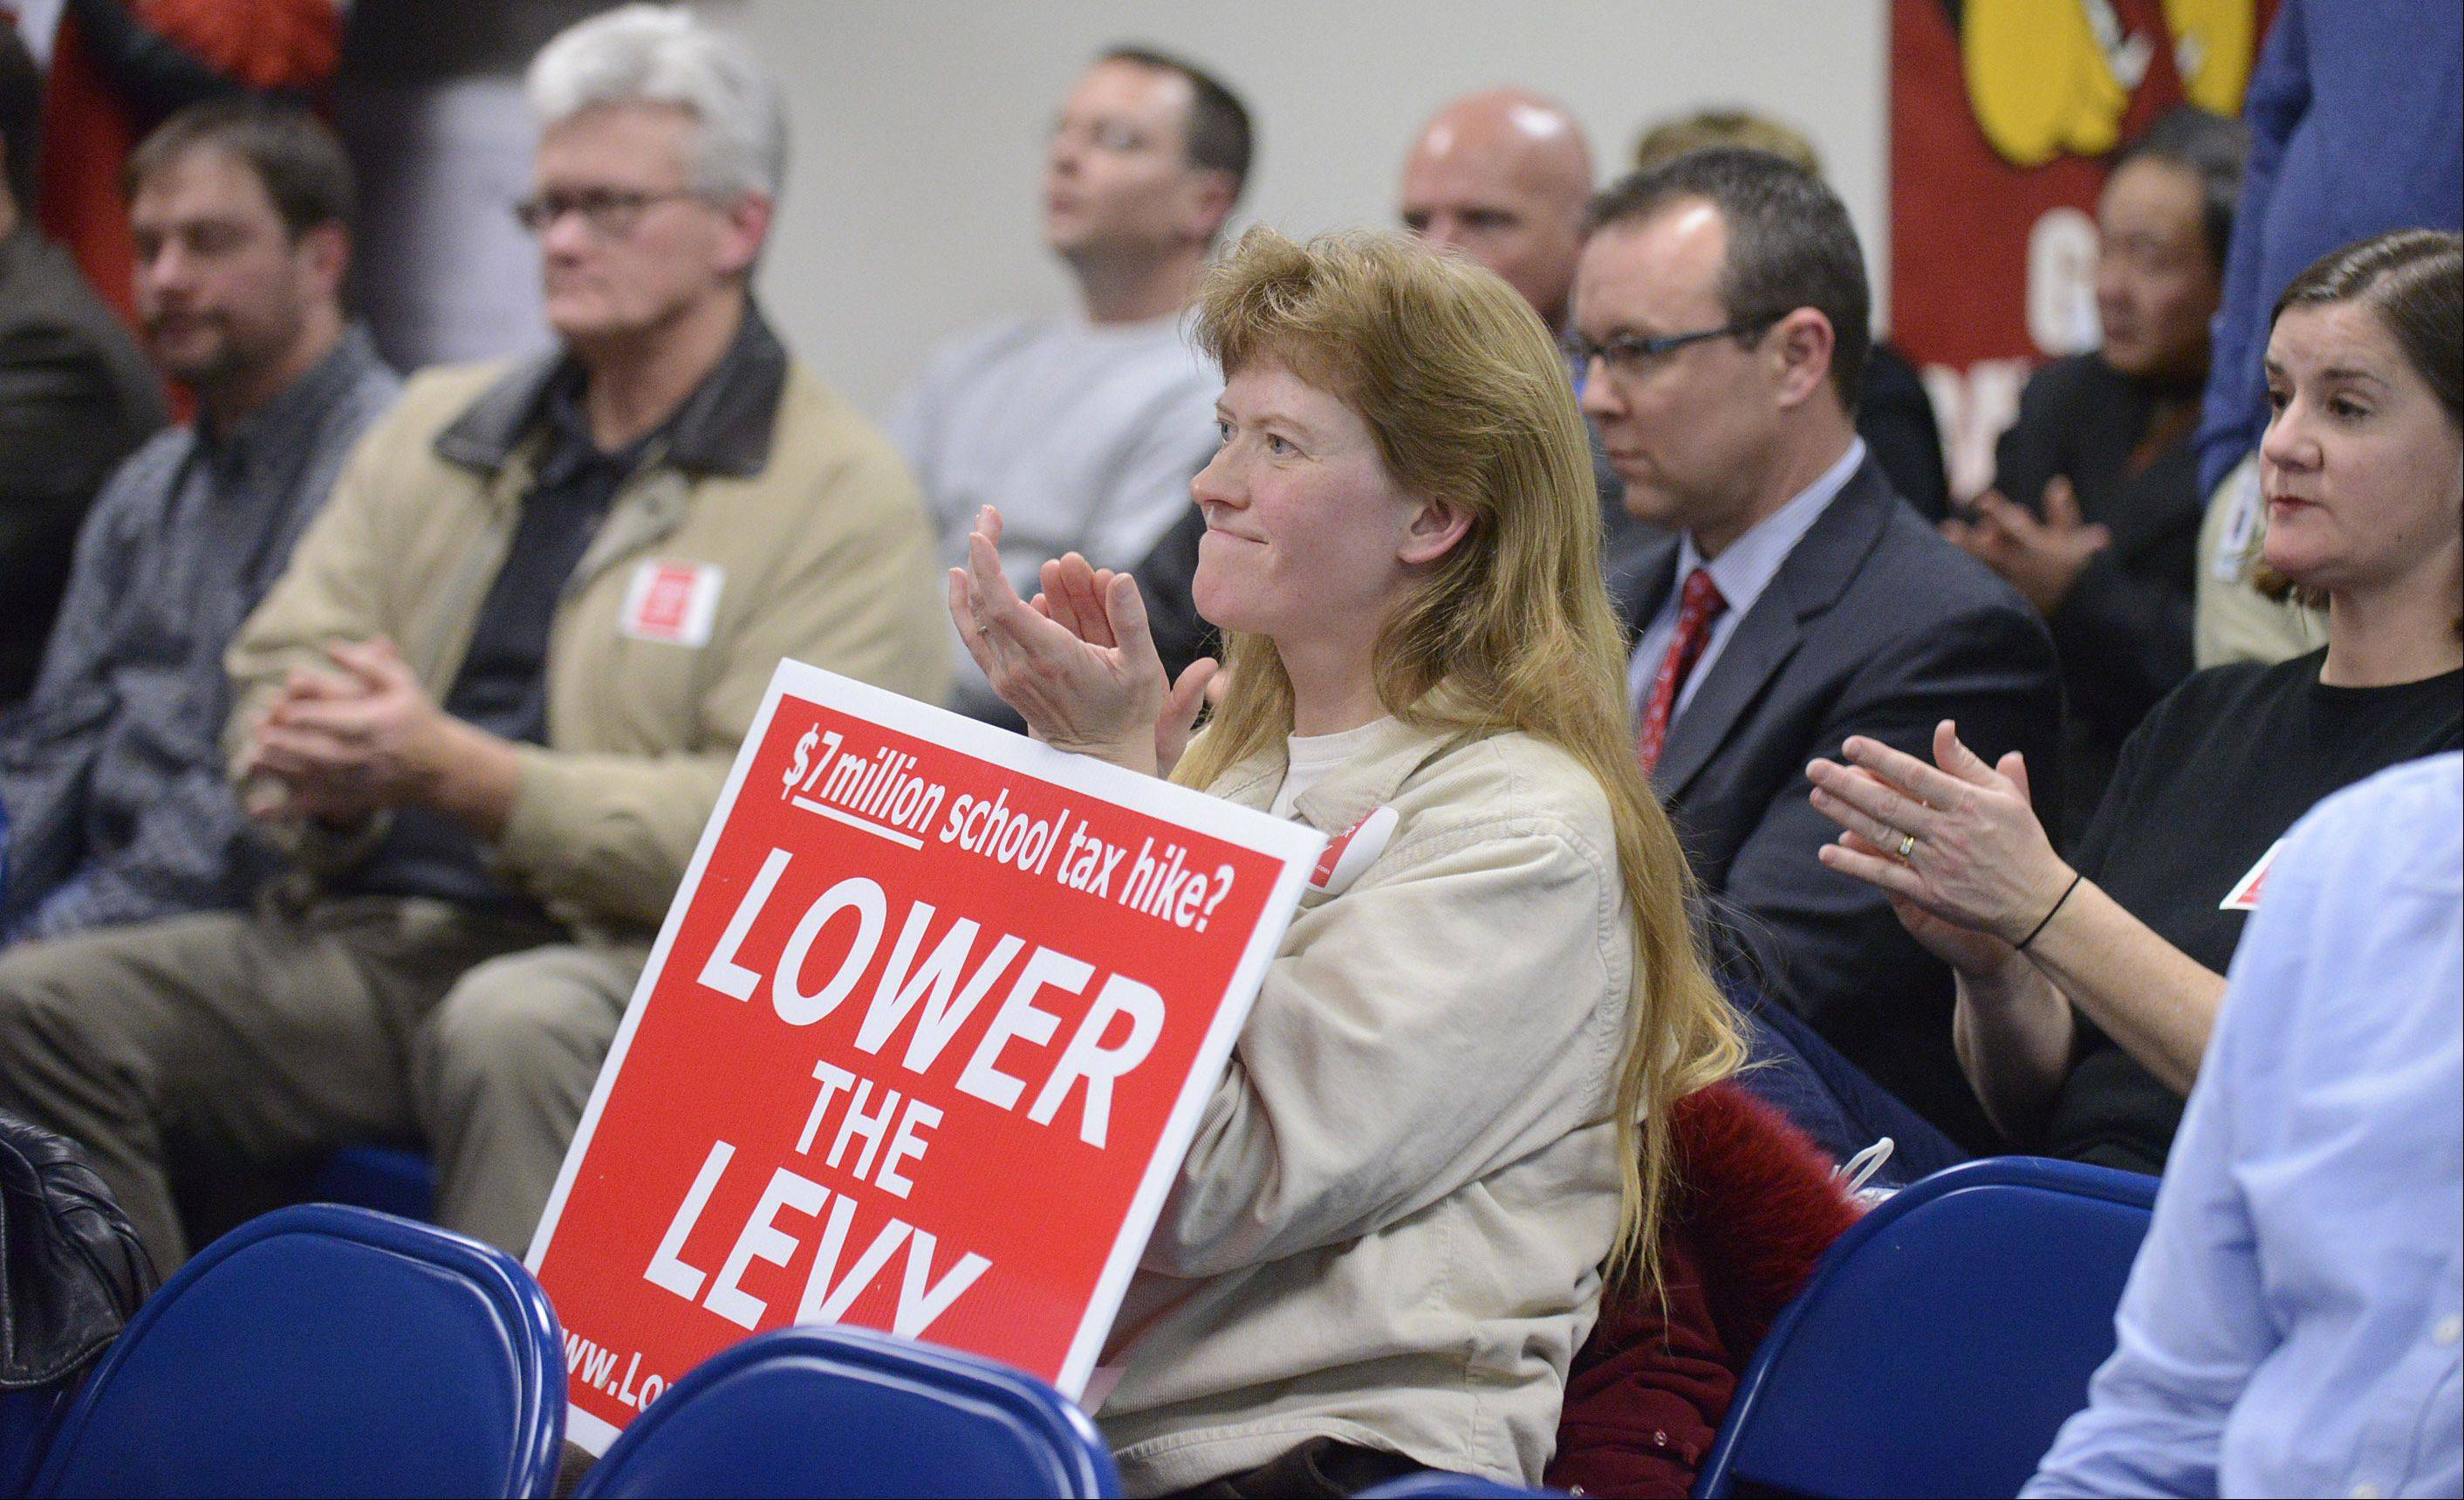 Batavia resident of 15 years, Sylvia Keppel, applauds a fellow resident who opposes the levy increase during the public comment section at the Batavia school board meeting on Tuesday night. The majority of the crowd asked the school board to not go for as much property taxes as it could. The protestors say that, with the addition of the Aurora Outlet Mall's tax payments finally going to the school district after being in a TIF district, the rest of the taxpayers should get a break.